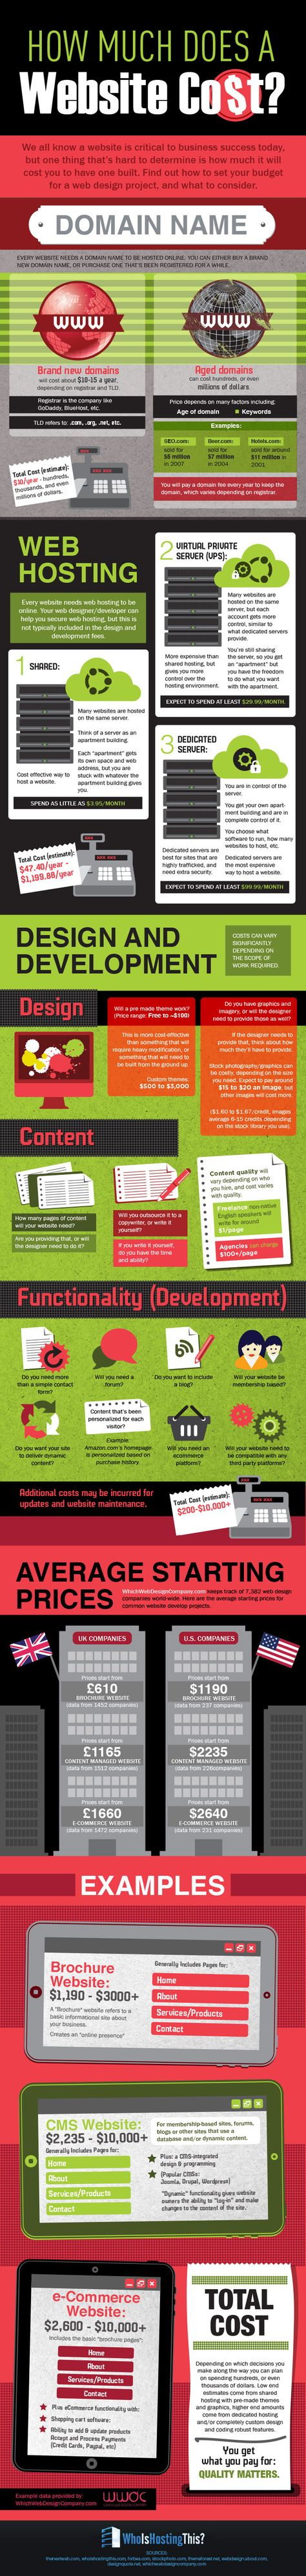 How Much Does a Website Really Cost?   #infographic #Website #WebDesign